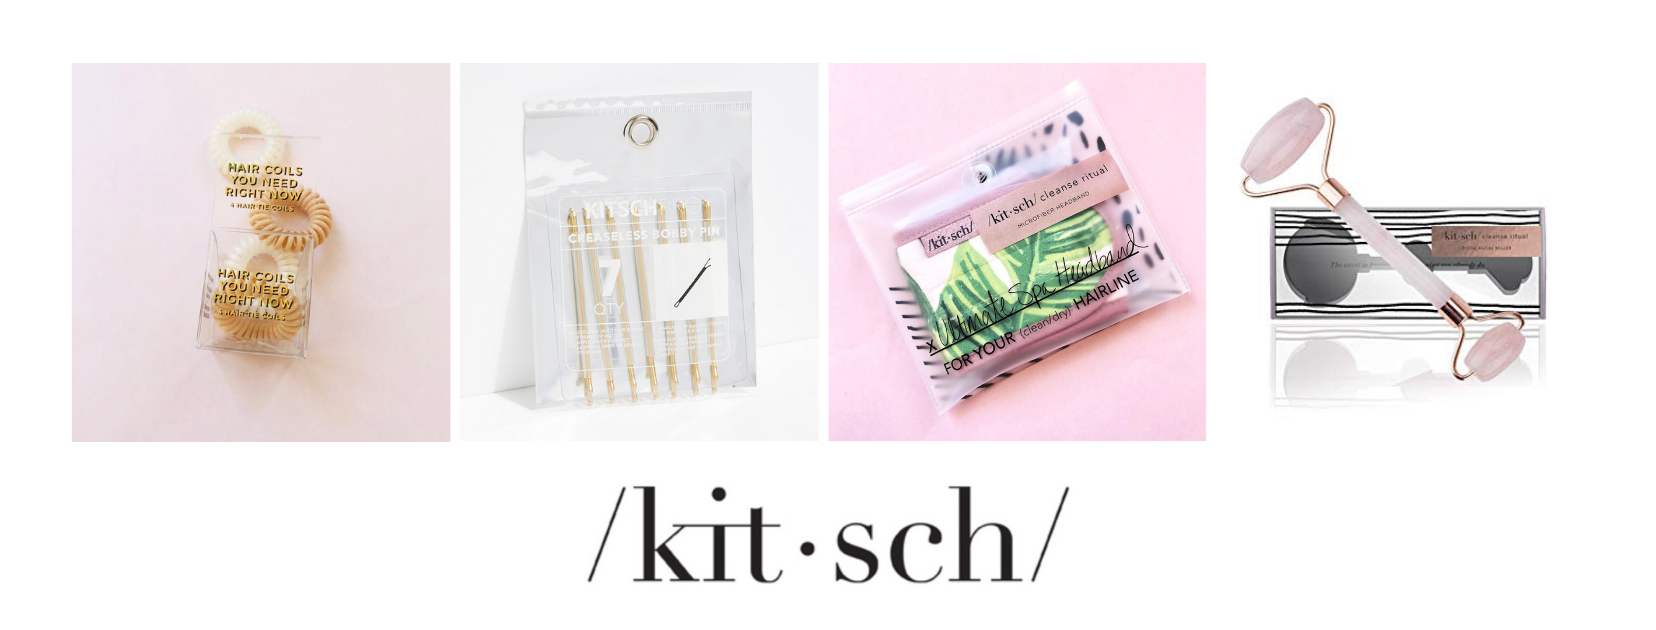 Kitsch Accessories select items available in our online shop and more available in essential for any beauty routine